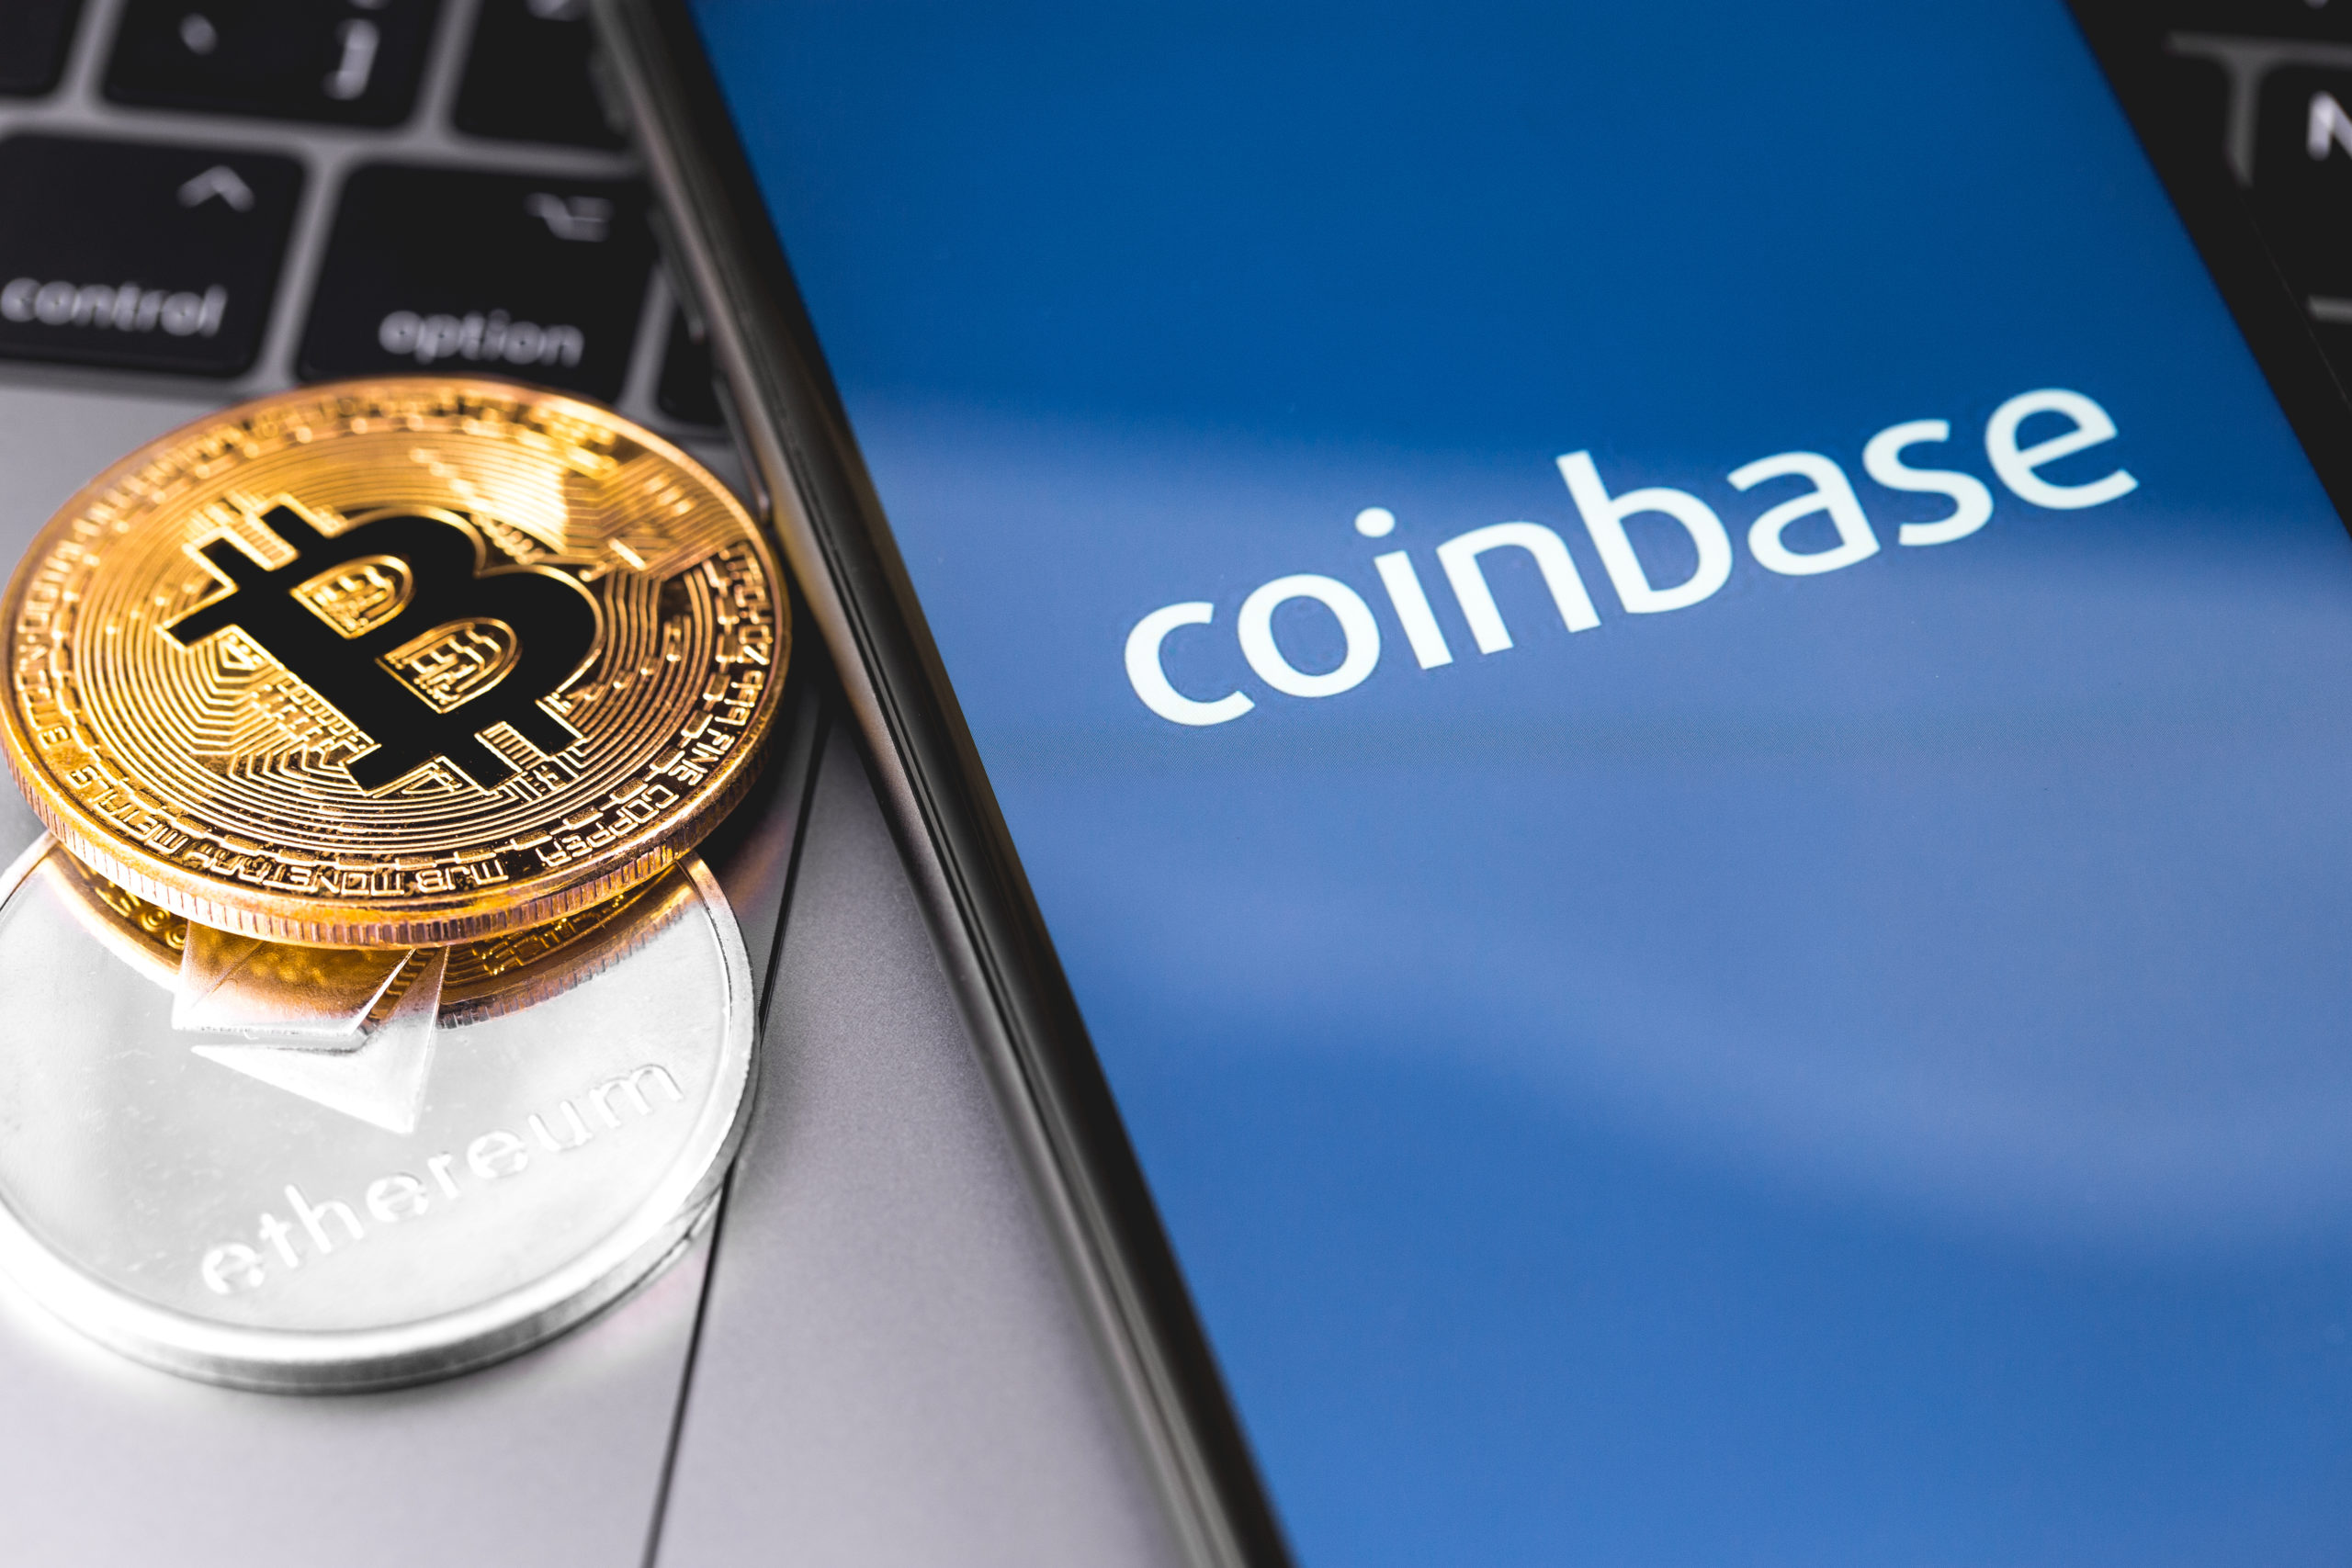 what cryptos are on coinbase